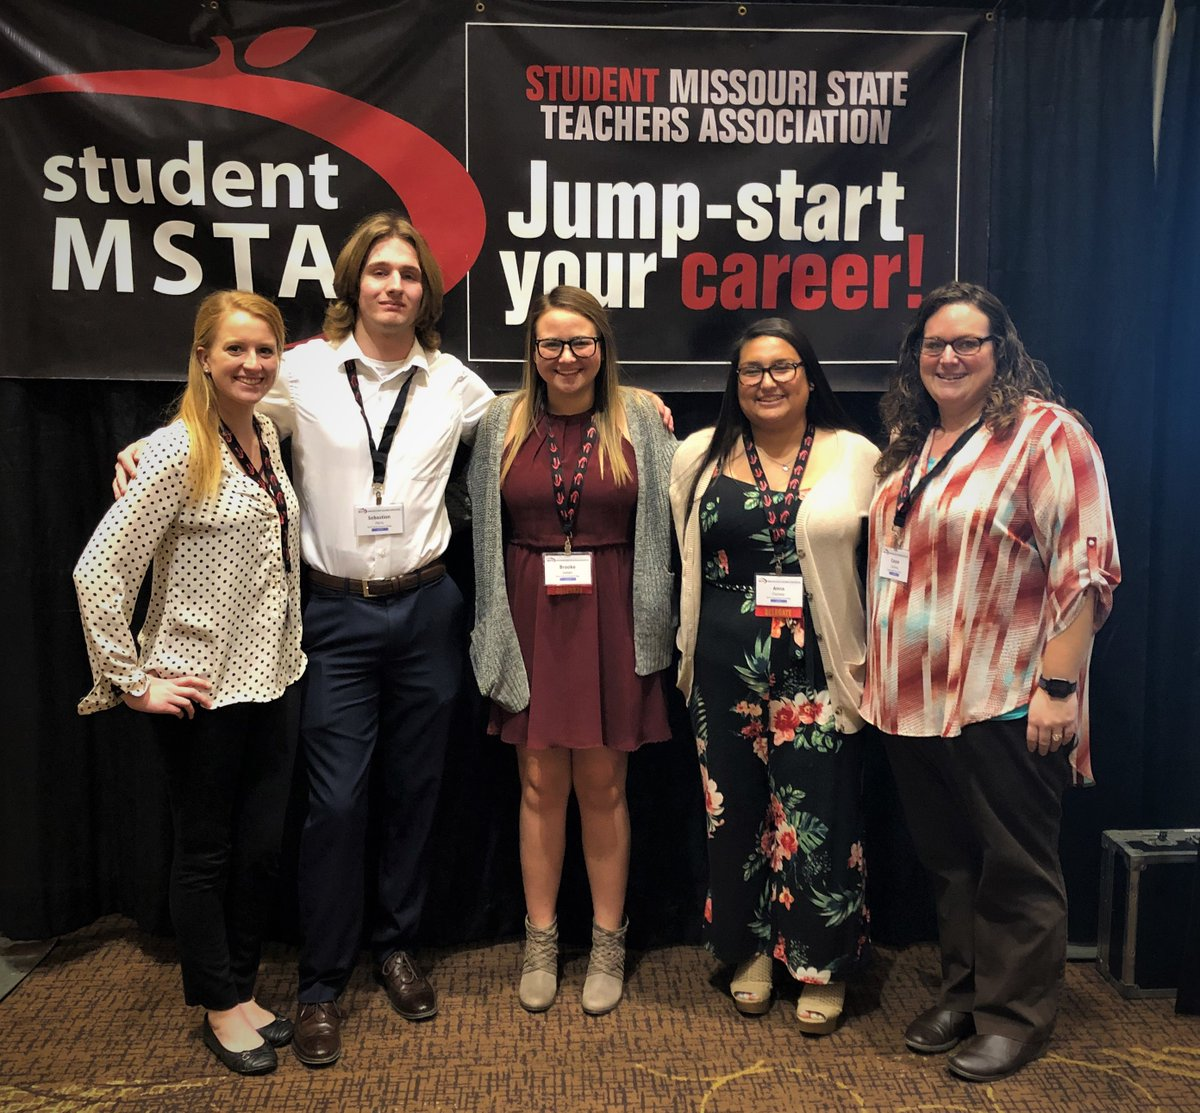 Congrats to our future teachers that attended State SMSTA Convention! https://t.co/67eopCEAk2 https://t.co/tnwYpSL1cm